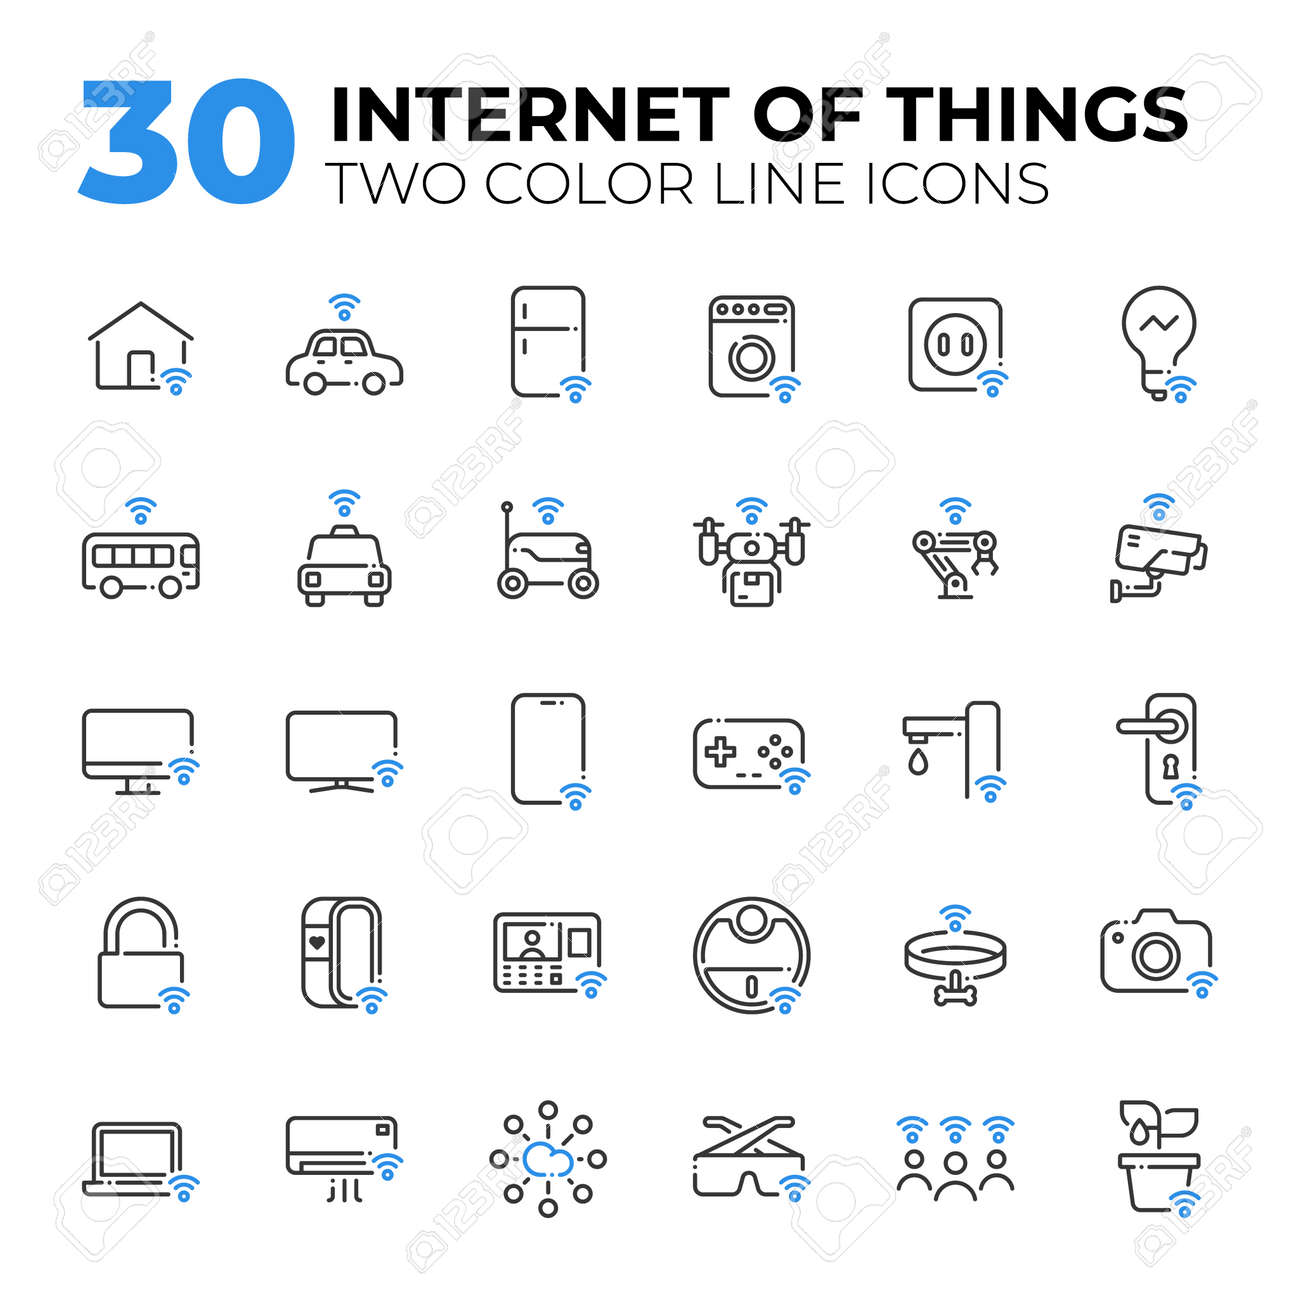 Internet of Things two color line icons. - 155061258